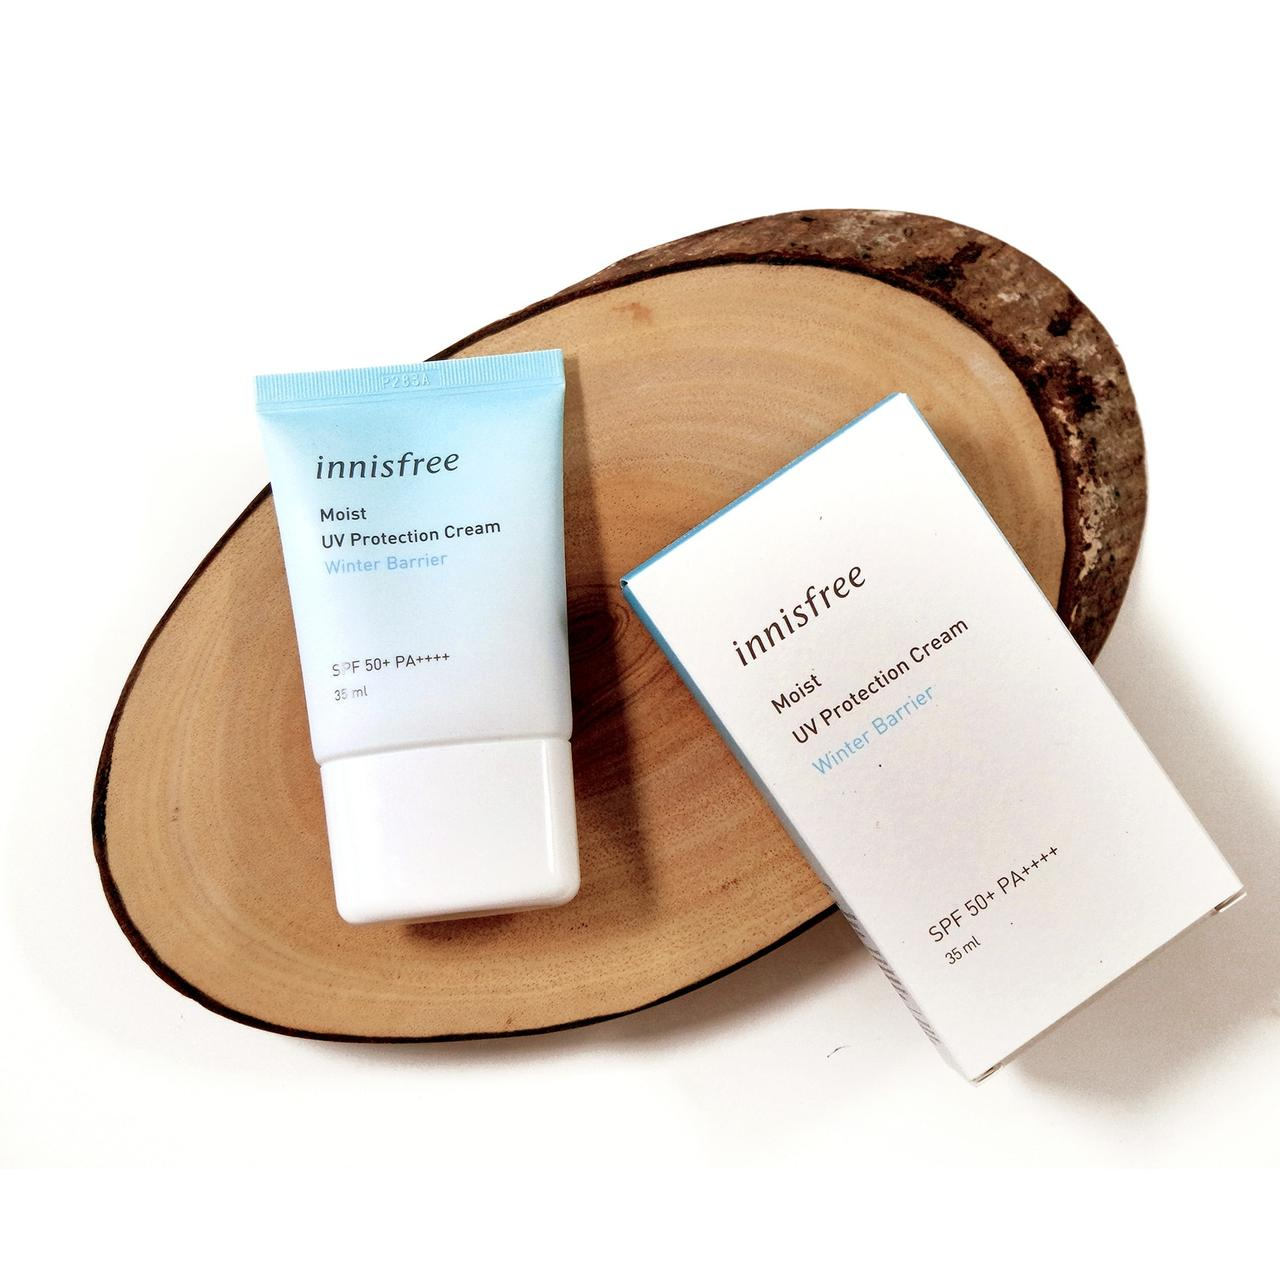 Солнцезащитный крем Innisfree Moist UV Protection Cream Winter Barrier SPF50+ PA++++